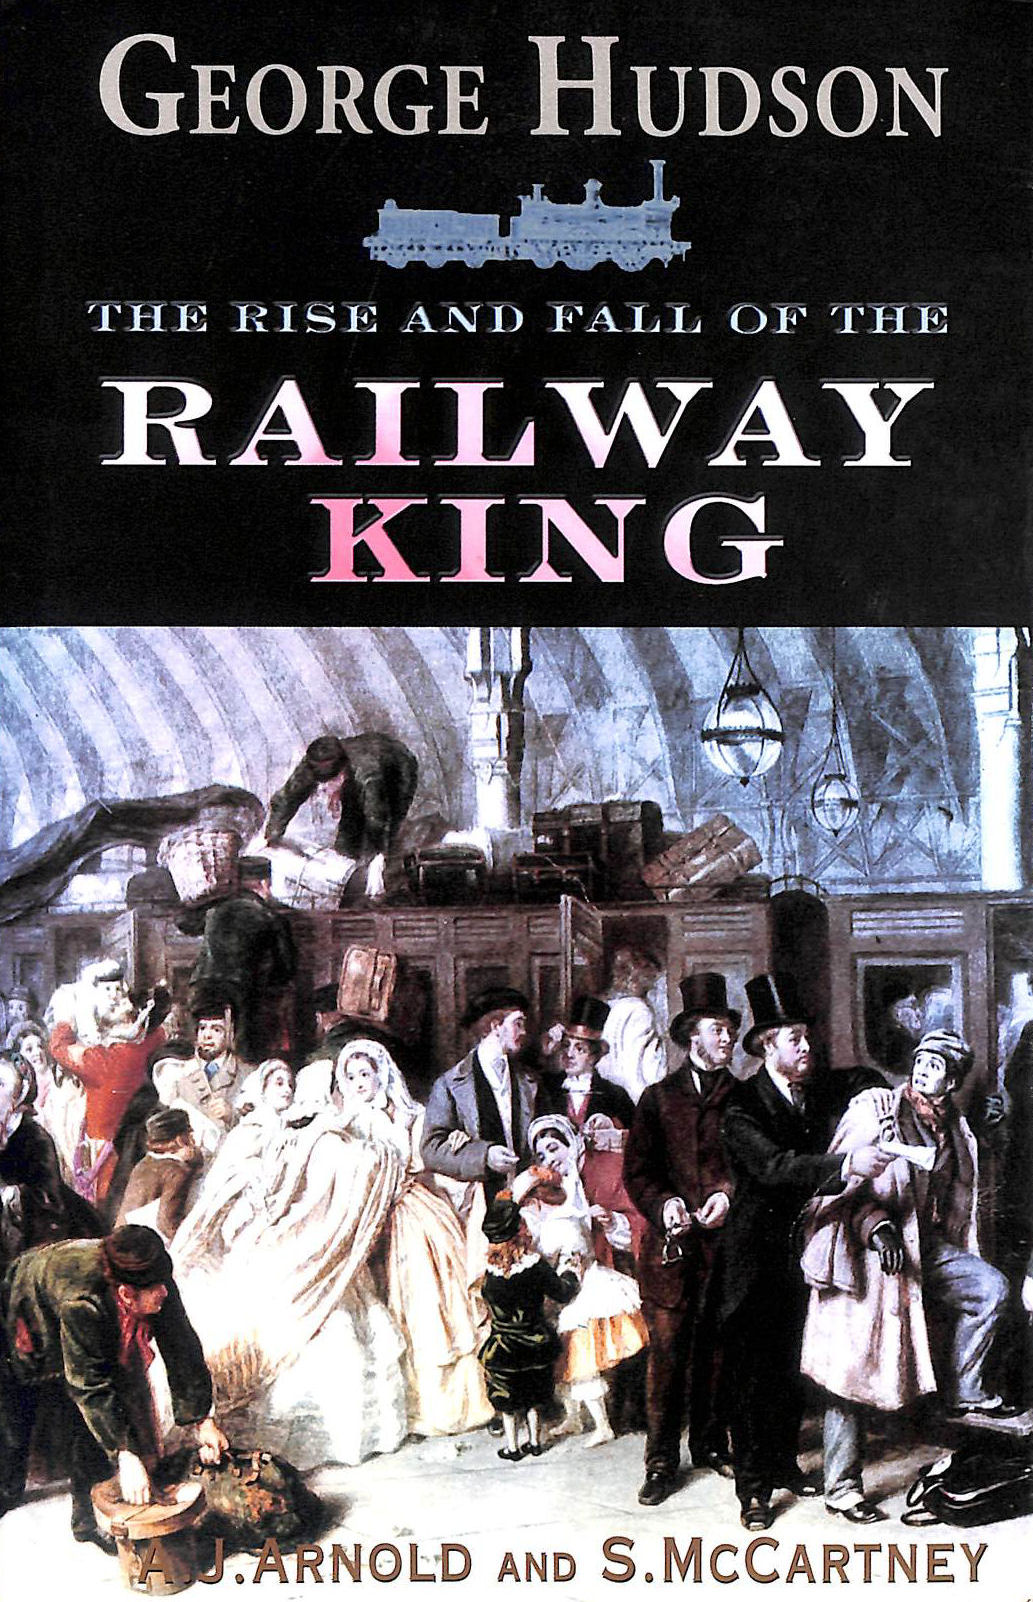 Image for George Hudson: The Rise and Fall of the Railway King